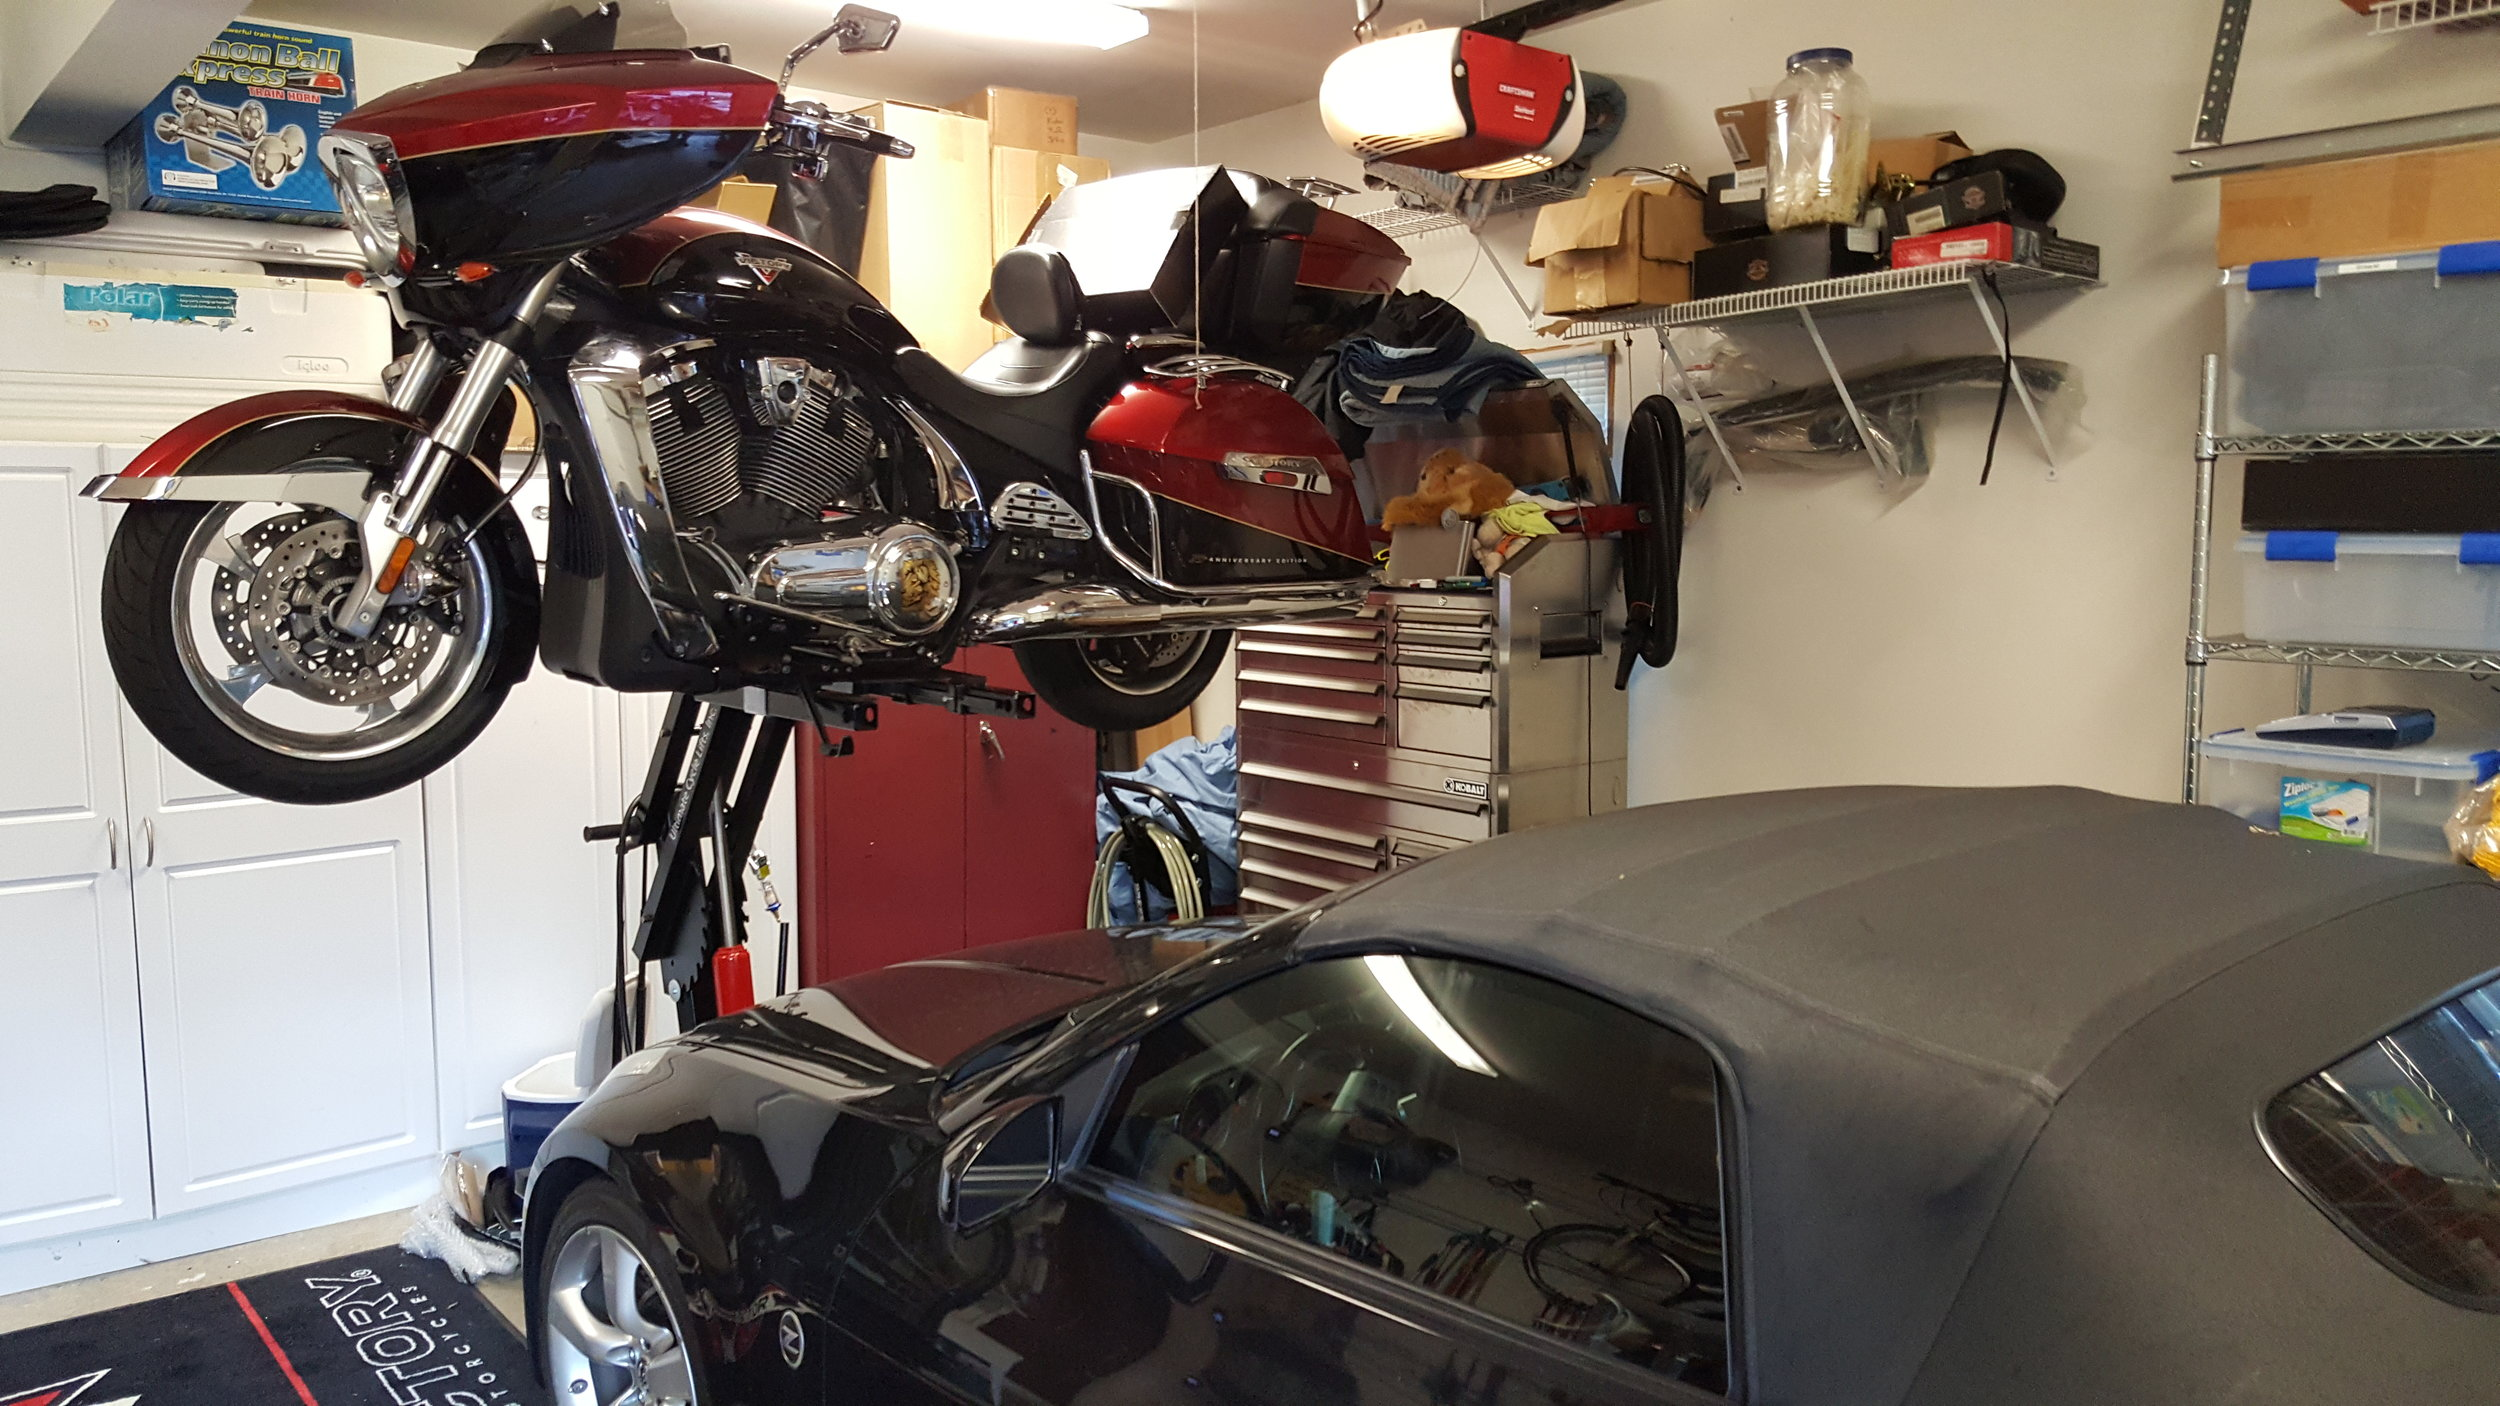 Hey Guys,  Here are the pix of my Victory Cross Country motorcycle on your lift.  The caveat is that we added the steel Witchdoctor's Skid/Jacking plate to provide stability, due to Victory motorcycles using the engine as par of the frame and having a beveled bottom instead of two frame rails like a Harley.  The URL link to this item is: http://buywitchdoctors.com/index.html?search=skid+plate&global=Y&displaycategory_id=2506&searchcategory_id=0&category_id=2506&x=0&y=0  I've included the pix of my Cross Country on your lift.  Thanks again Chad for making a great product.  Sign: Very Satisfied Ultimate Lift Customer,  Joe Lyon